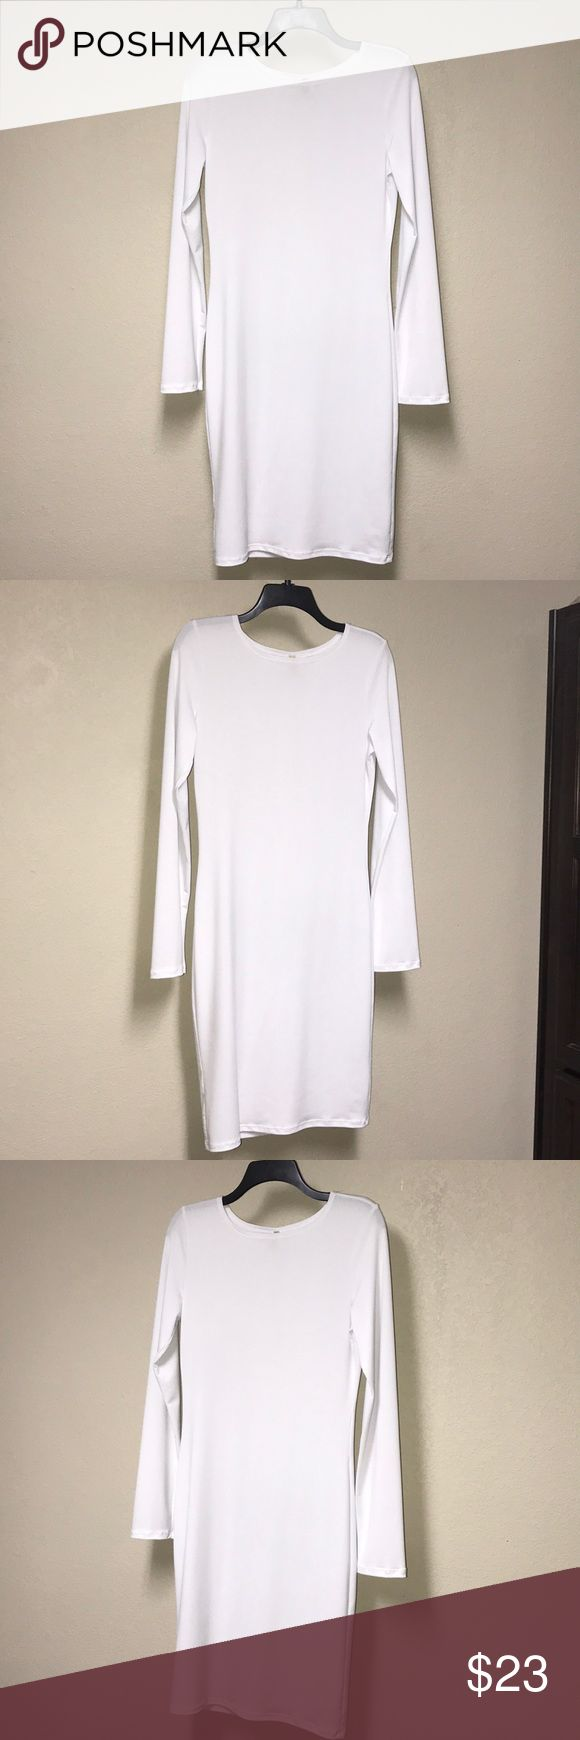 😇White BodyCon Dress😇 💕Sexy All White bodycon dress . Also filled with class & elegancy . Size XL , runs true to size . Great for a night out or day out . It hugs all your curves & the length is perfect😍Any questions , please ask😘 Dresses